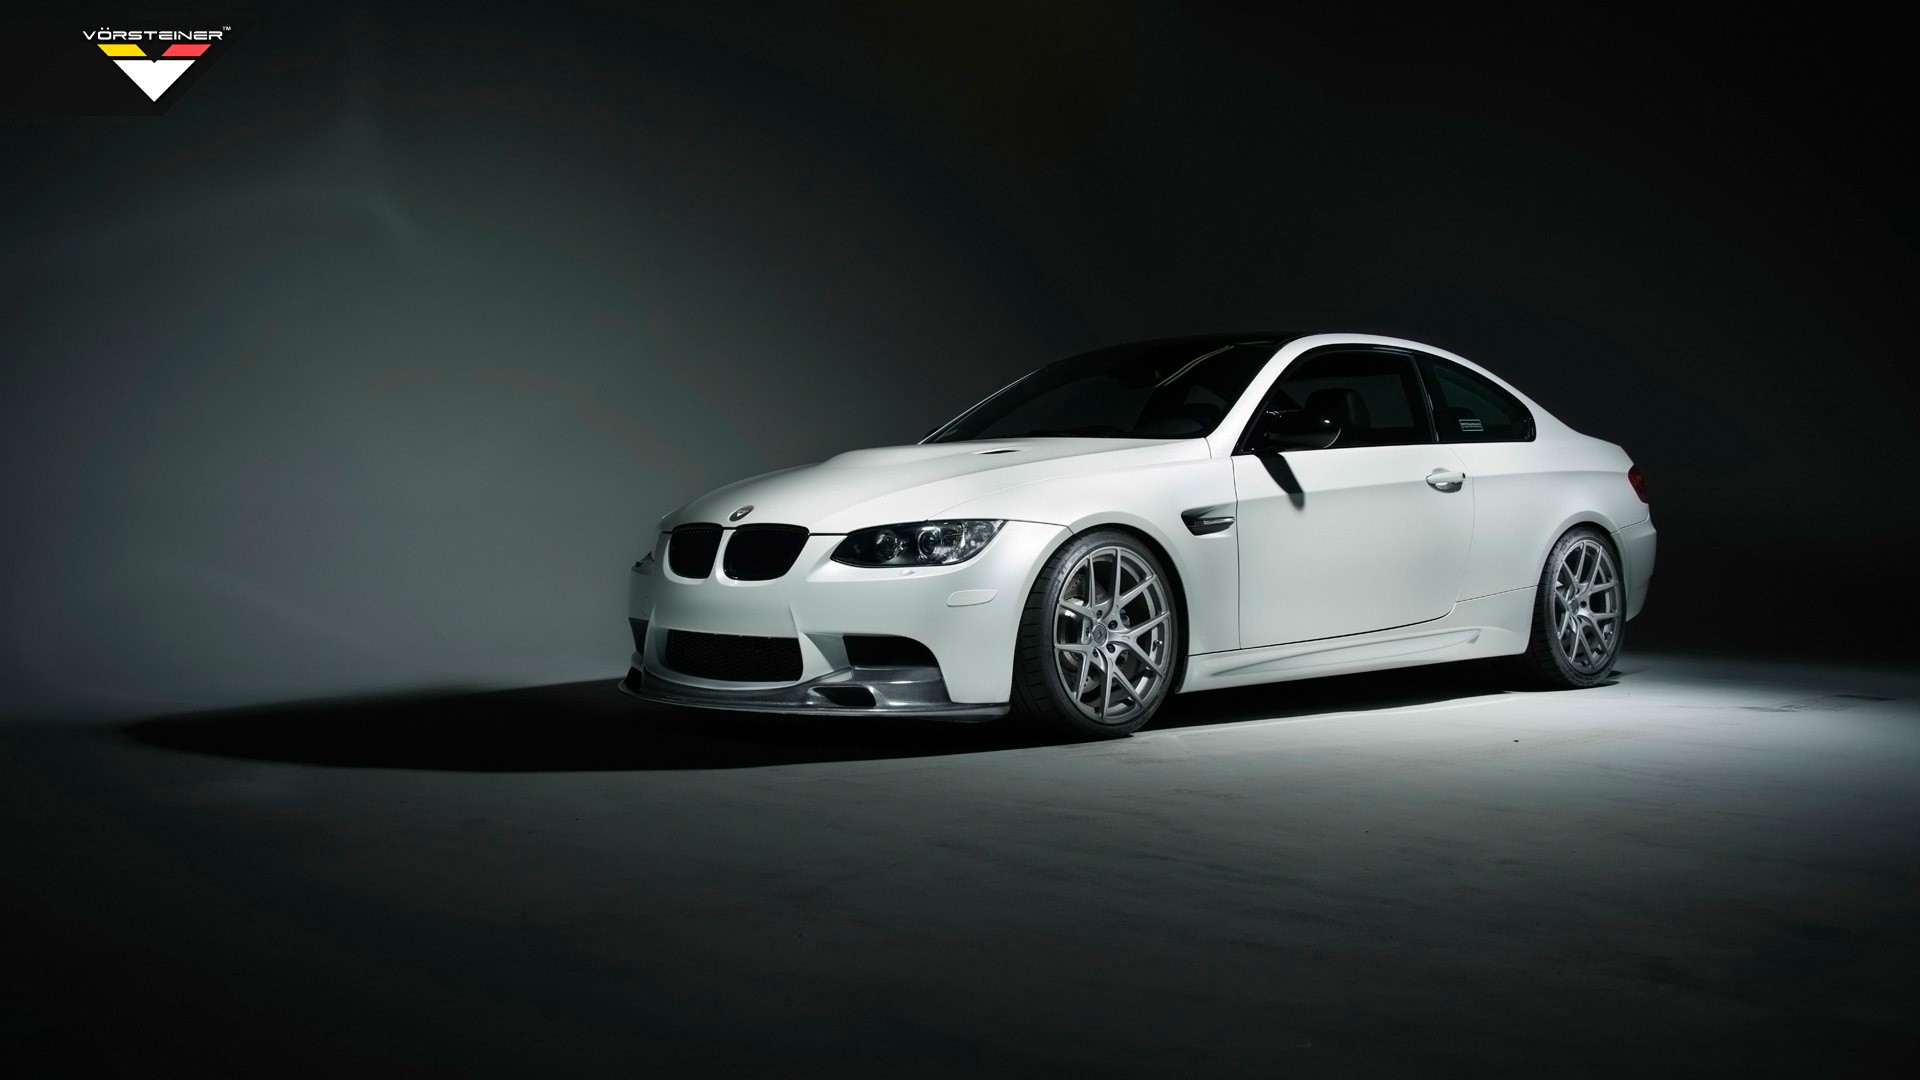 Www Hummer Car Wallpapers Com 2014 Bmw E92 M3 By Vorsteiner Wallpaper Hd Car